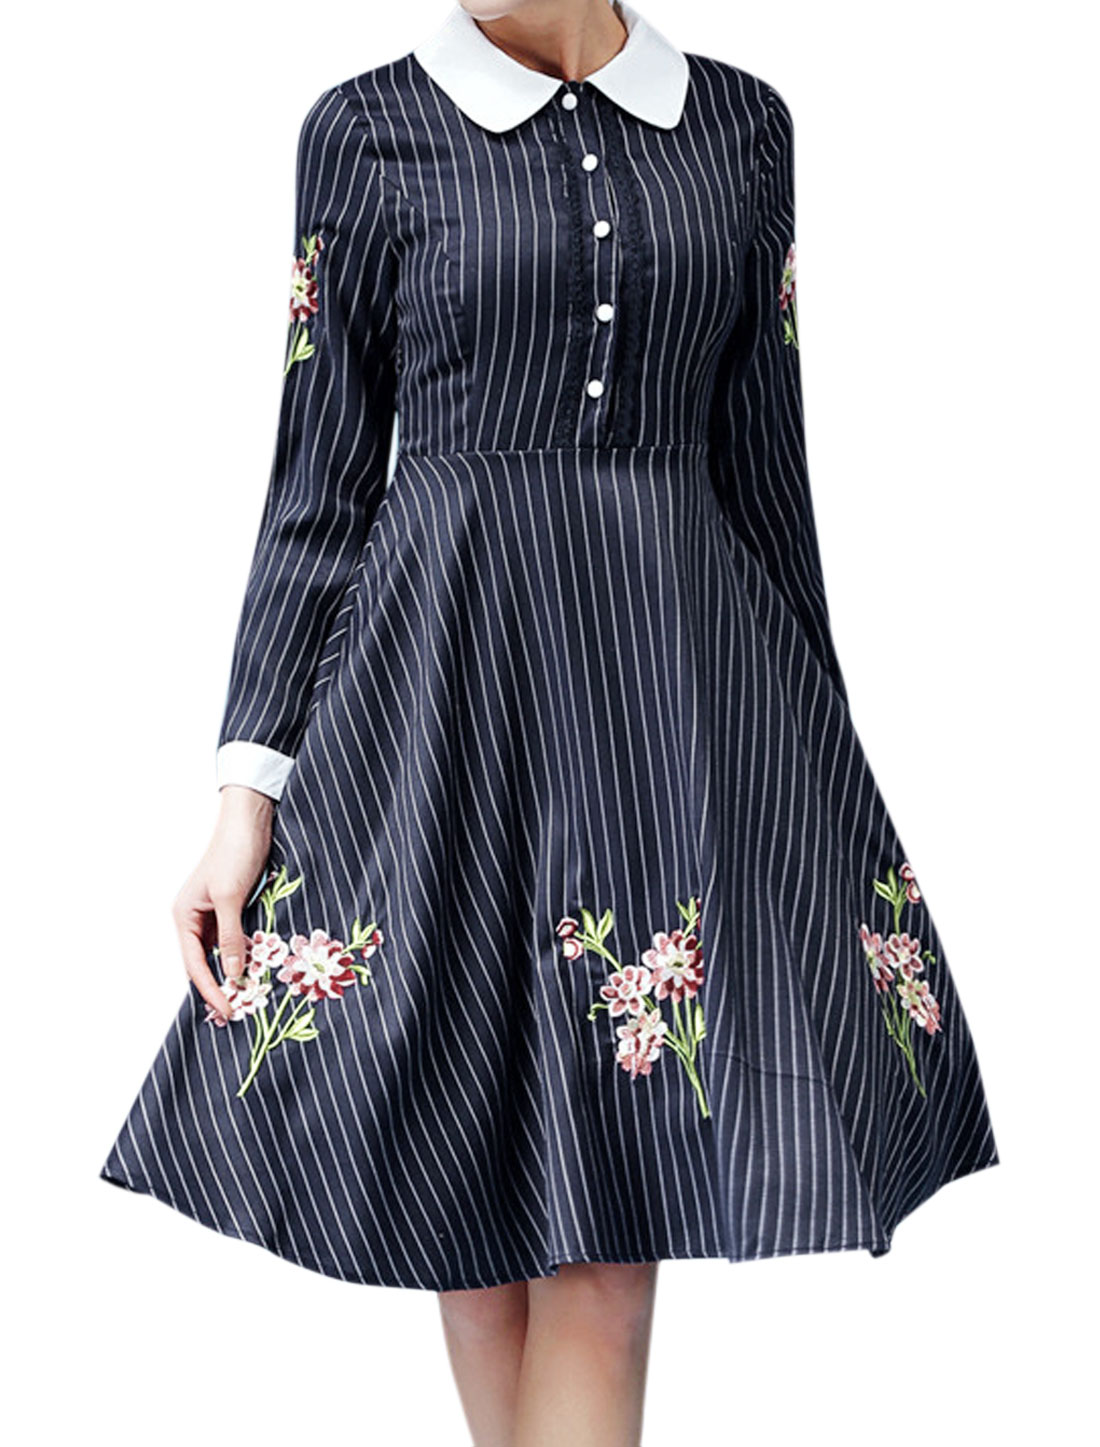 Women Point Collar Stripes Floral Embroidery Shirt Dress Blue M